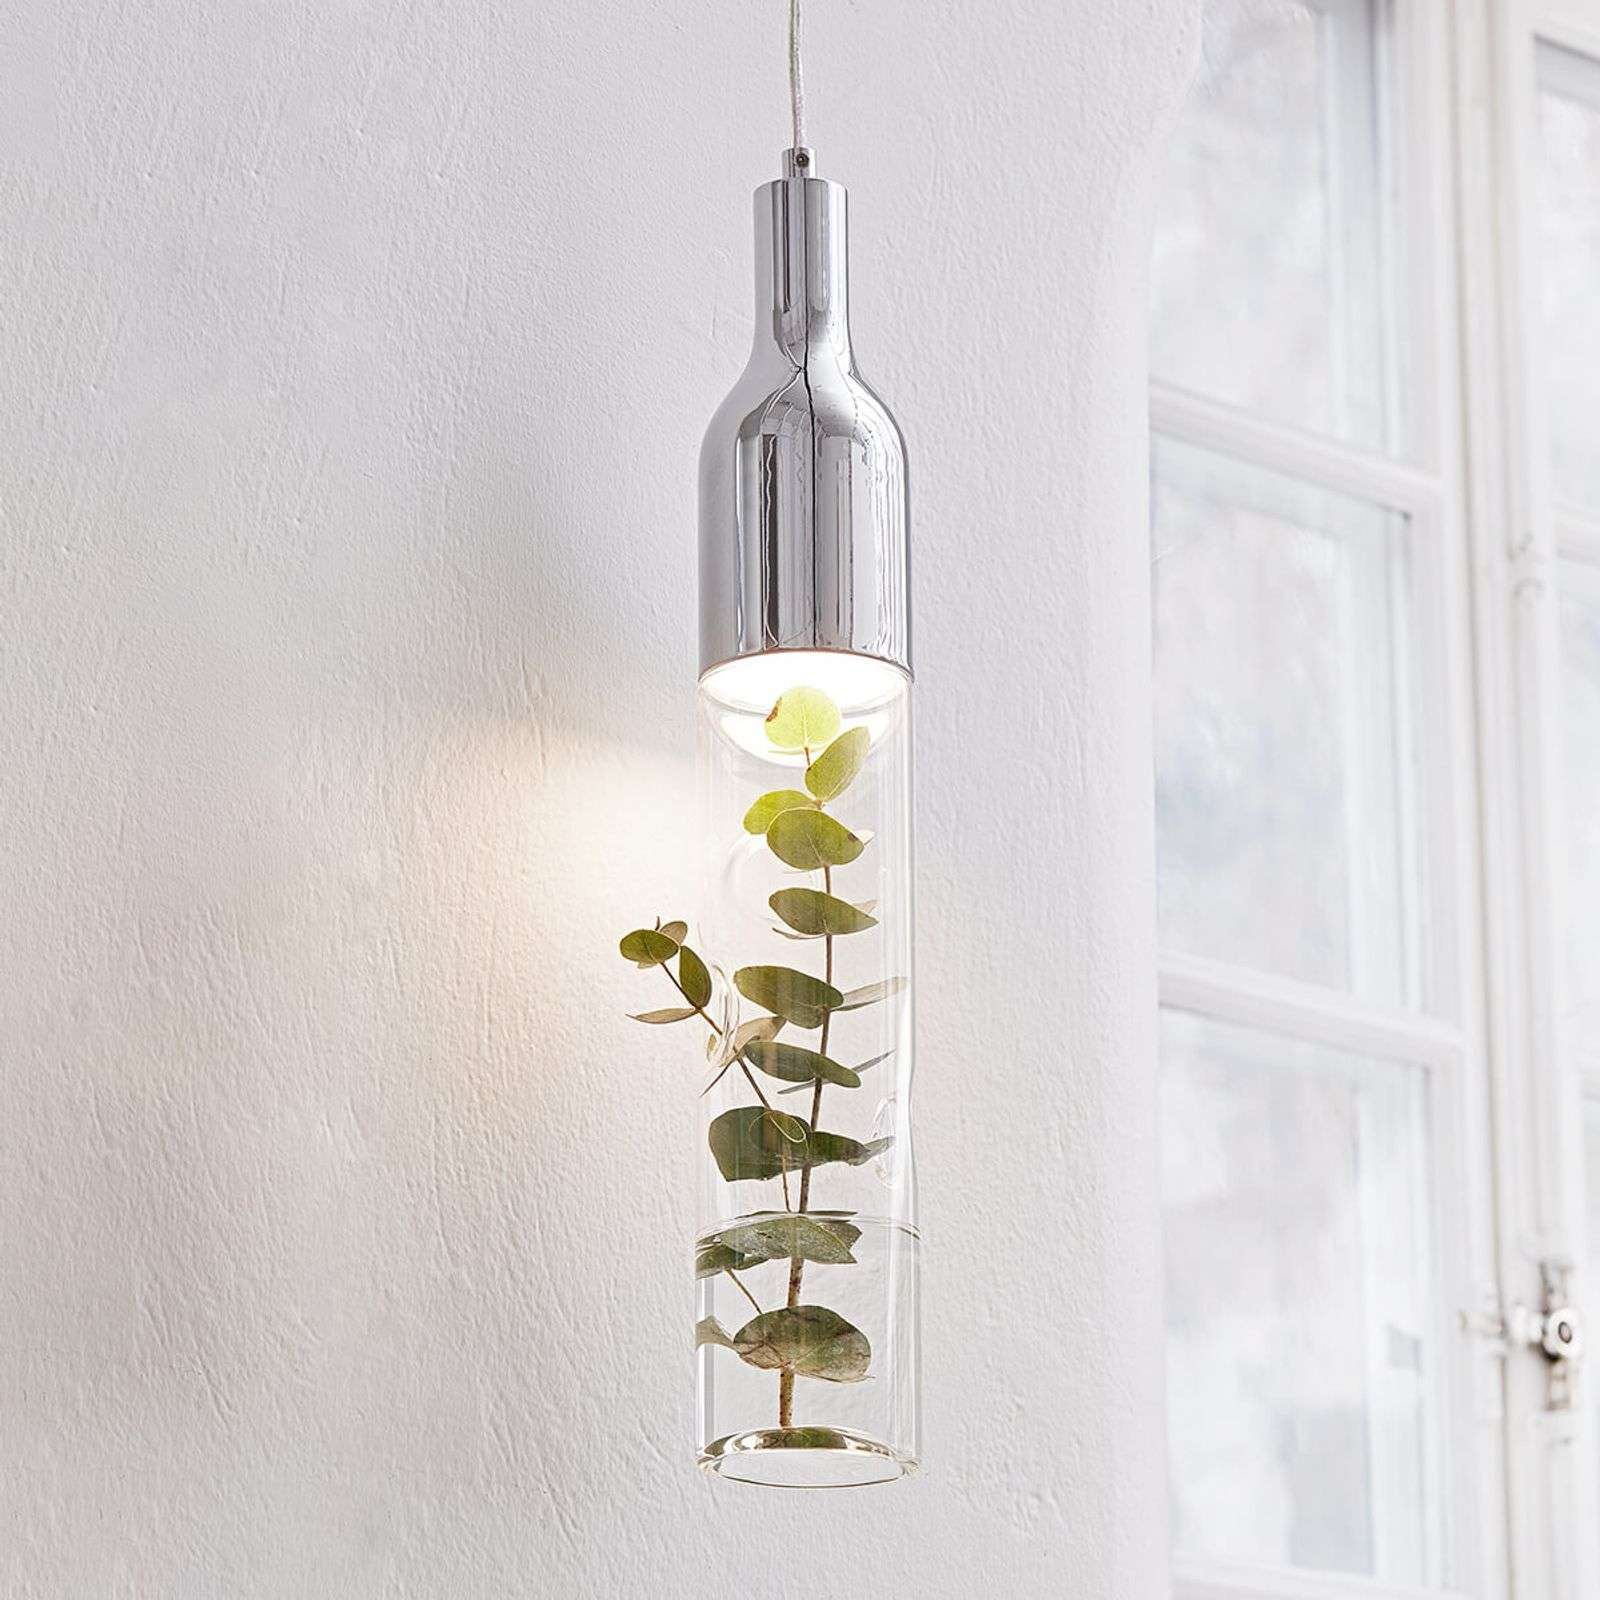 Decoratieve glazen hanglamp Bottle m.LED lamp